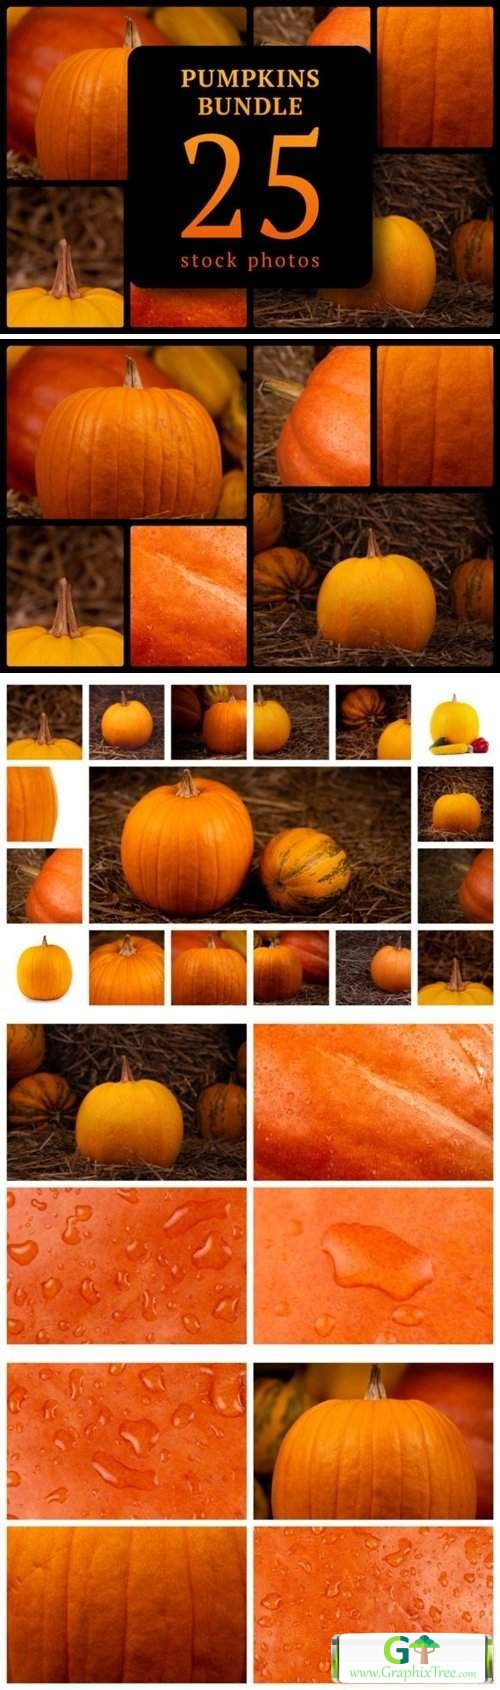 Pumpkins Bundle 25 Stock Photos [Vector] [Fruit & Food & Drink]